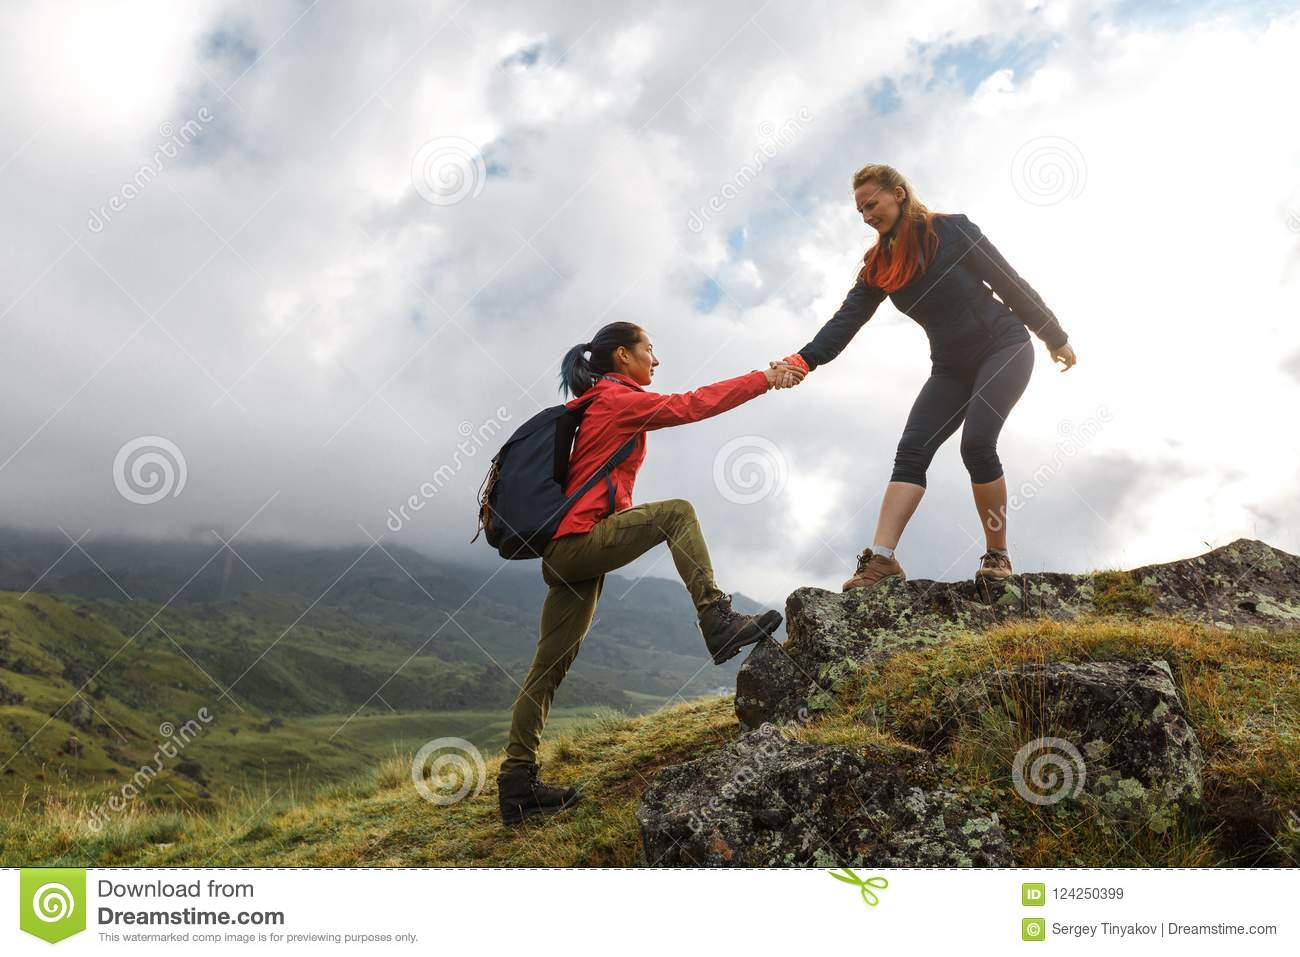 Girls helping each other hike up a mountain at sunrise. Giving a